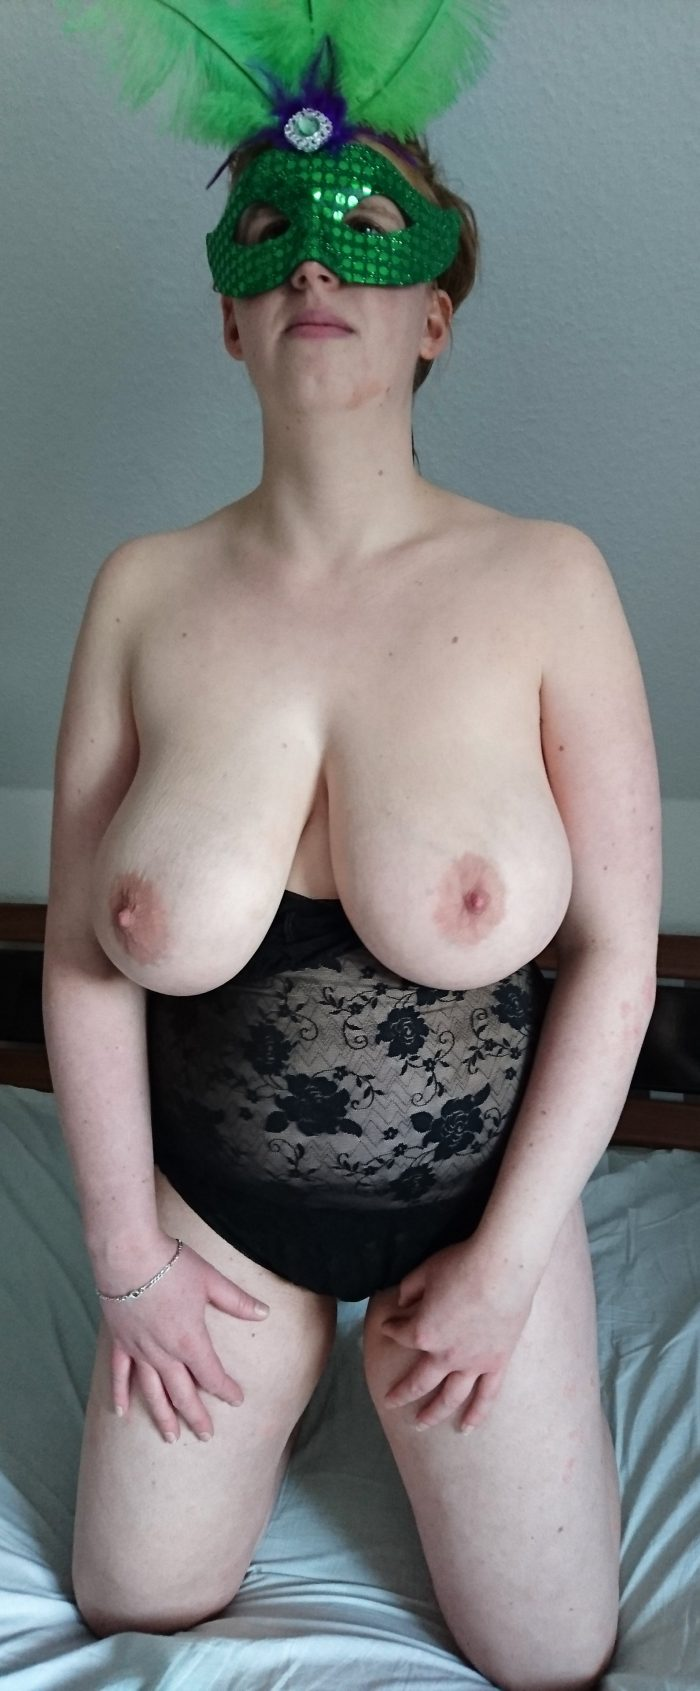 Amateur MILF shows her Big Boobs and Naked Body